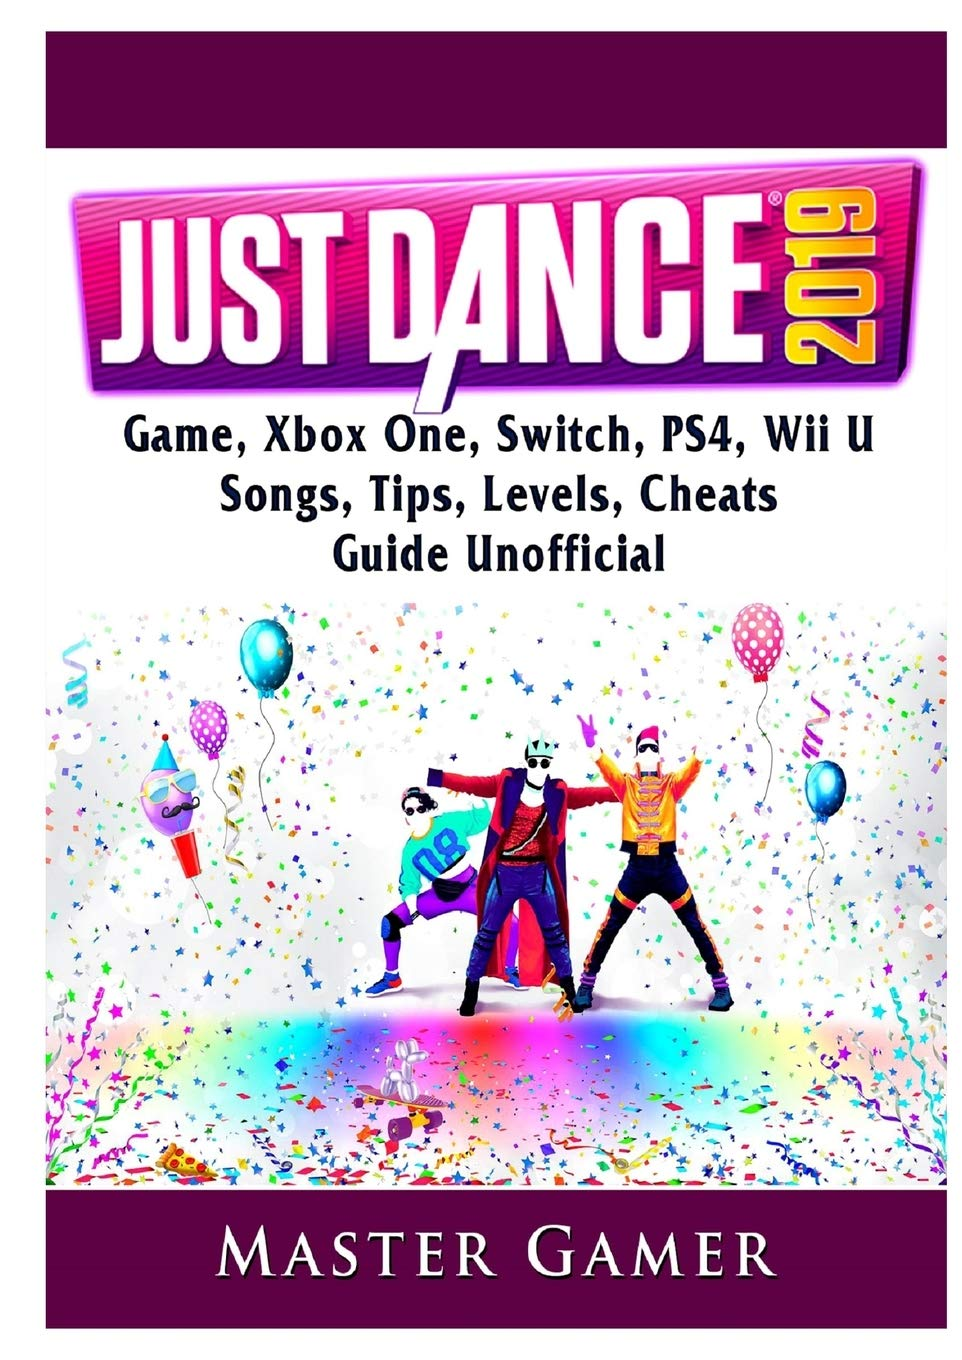 Just Dance 2019 Game, Xbox One, Switch, PS4, Wii U, Songs, Tips ...